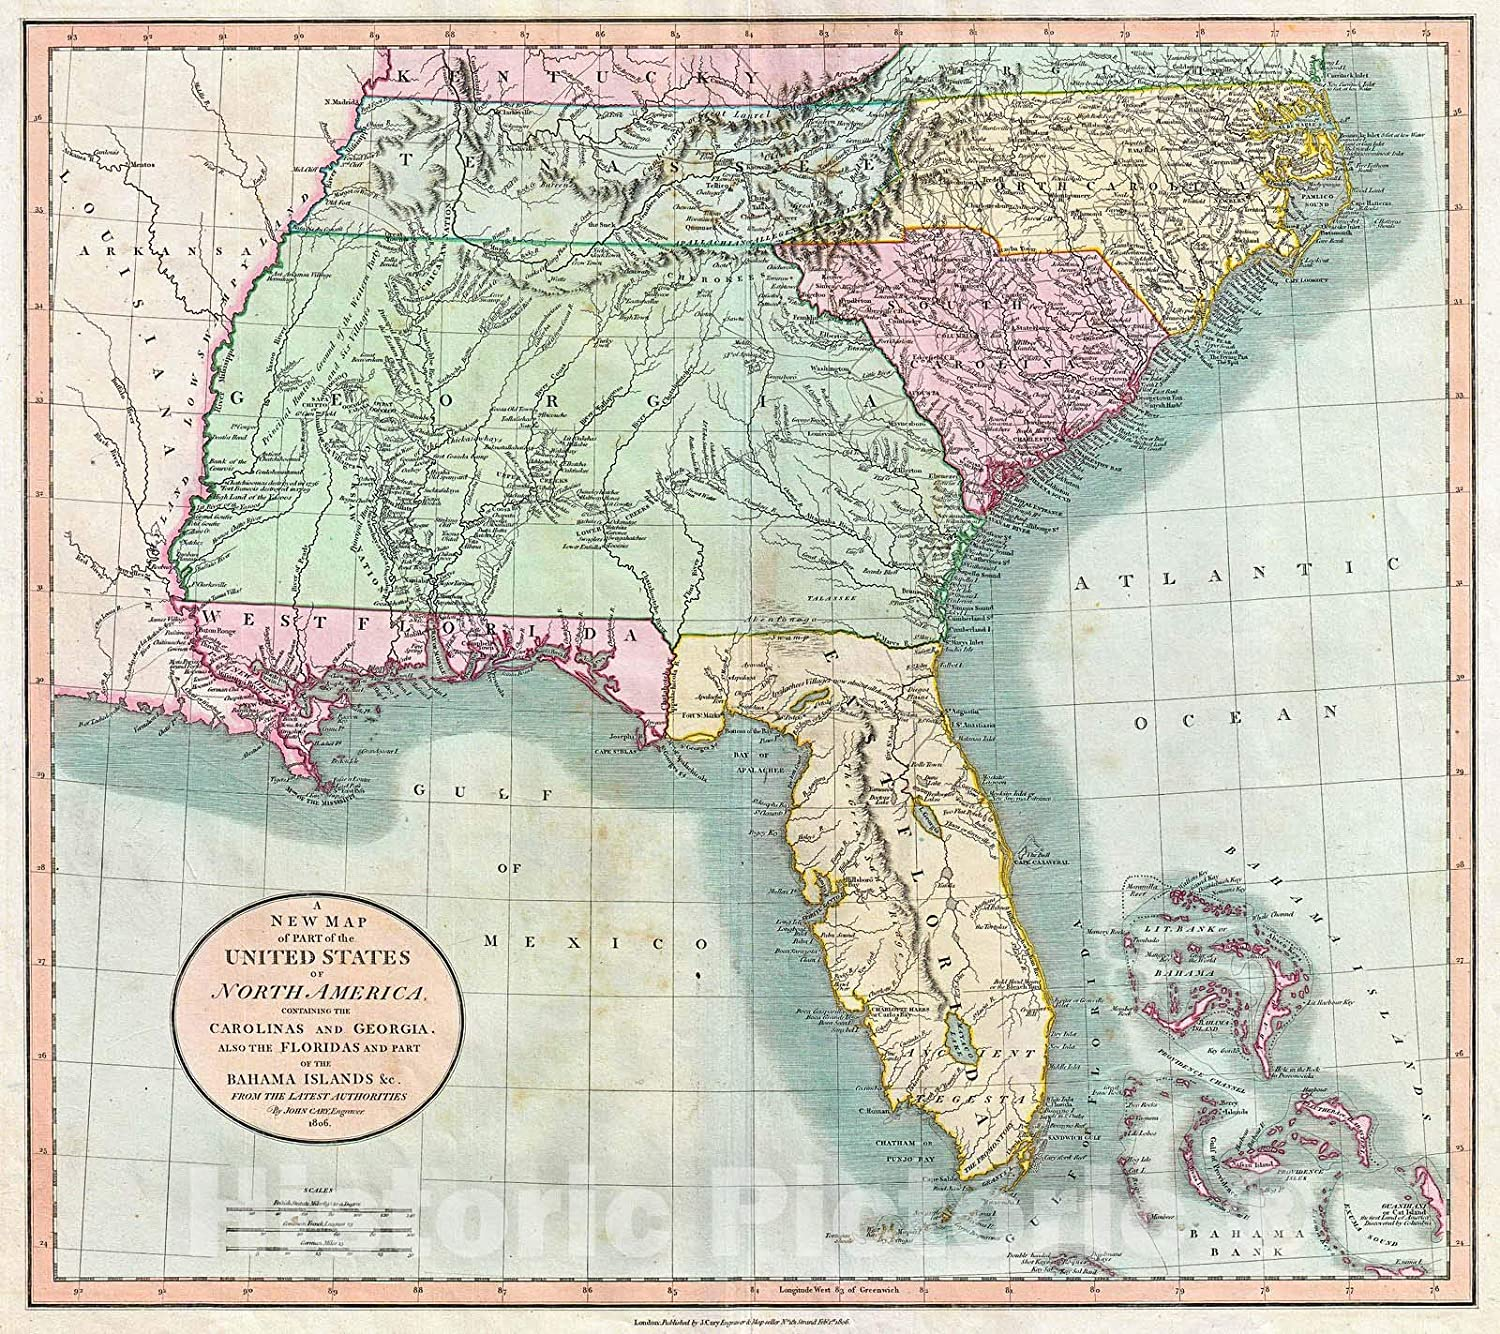 Map Of Florida Georgia And South Carolina Amazon.com: Historic Map : Cary Map of Florida, Georgia, North